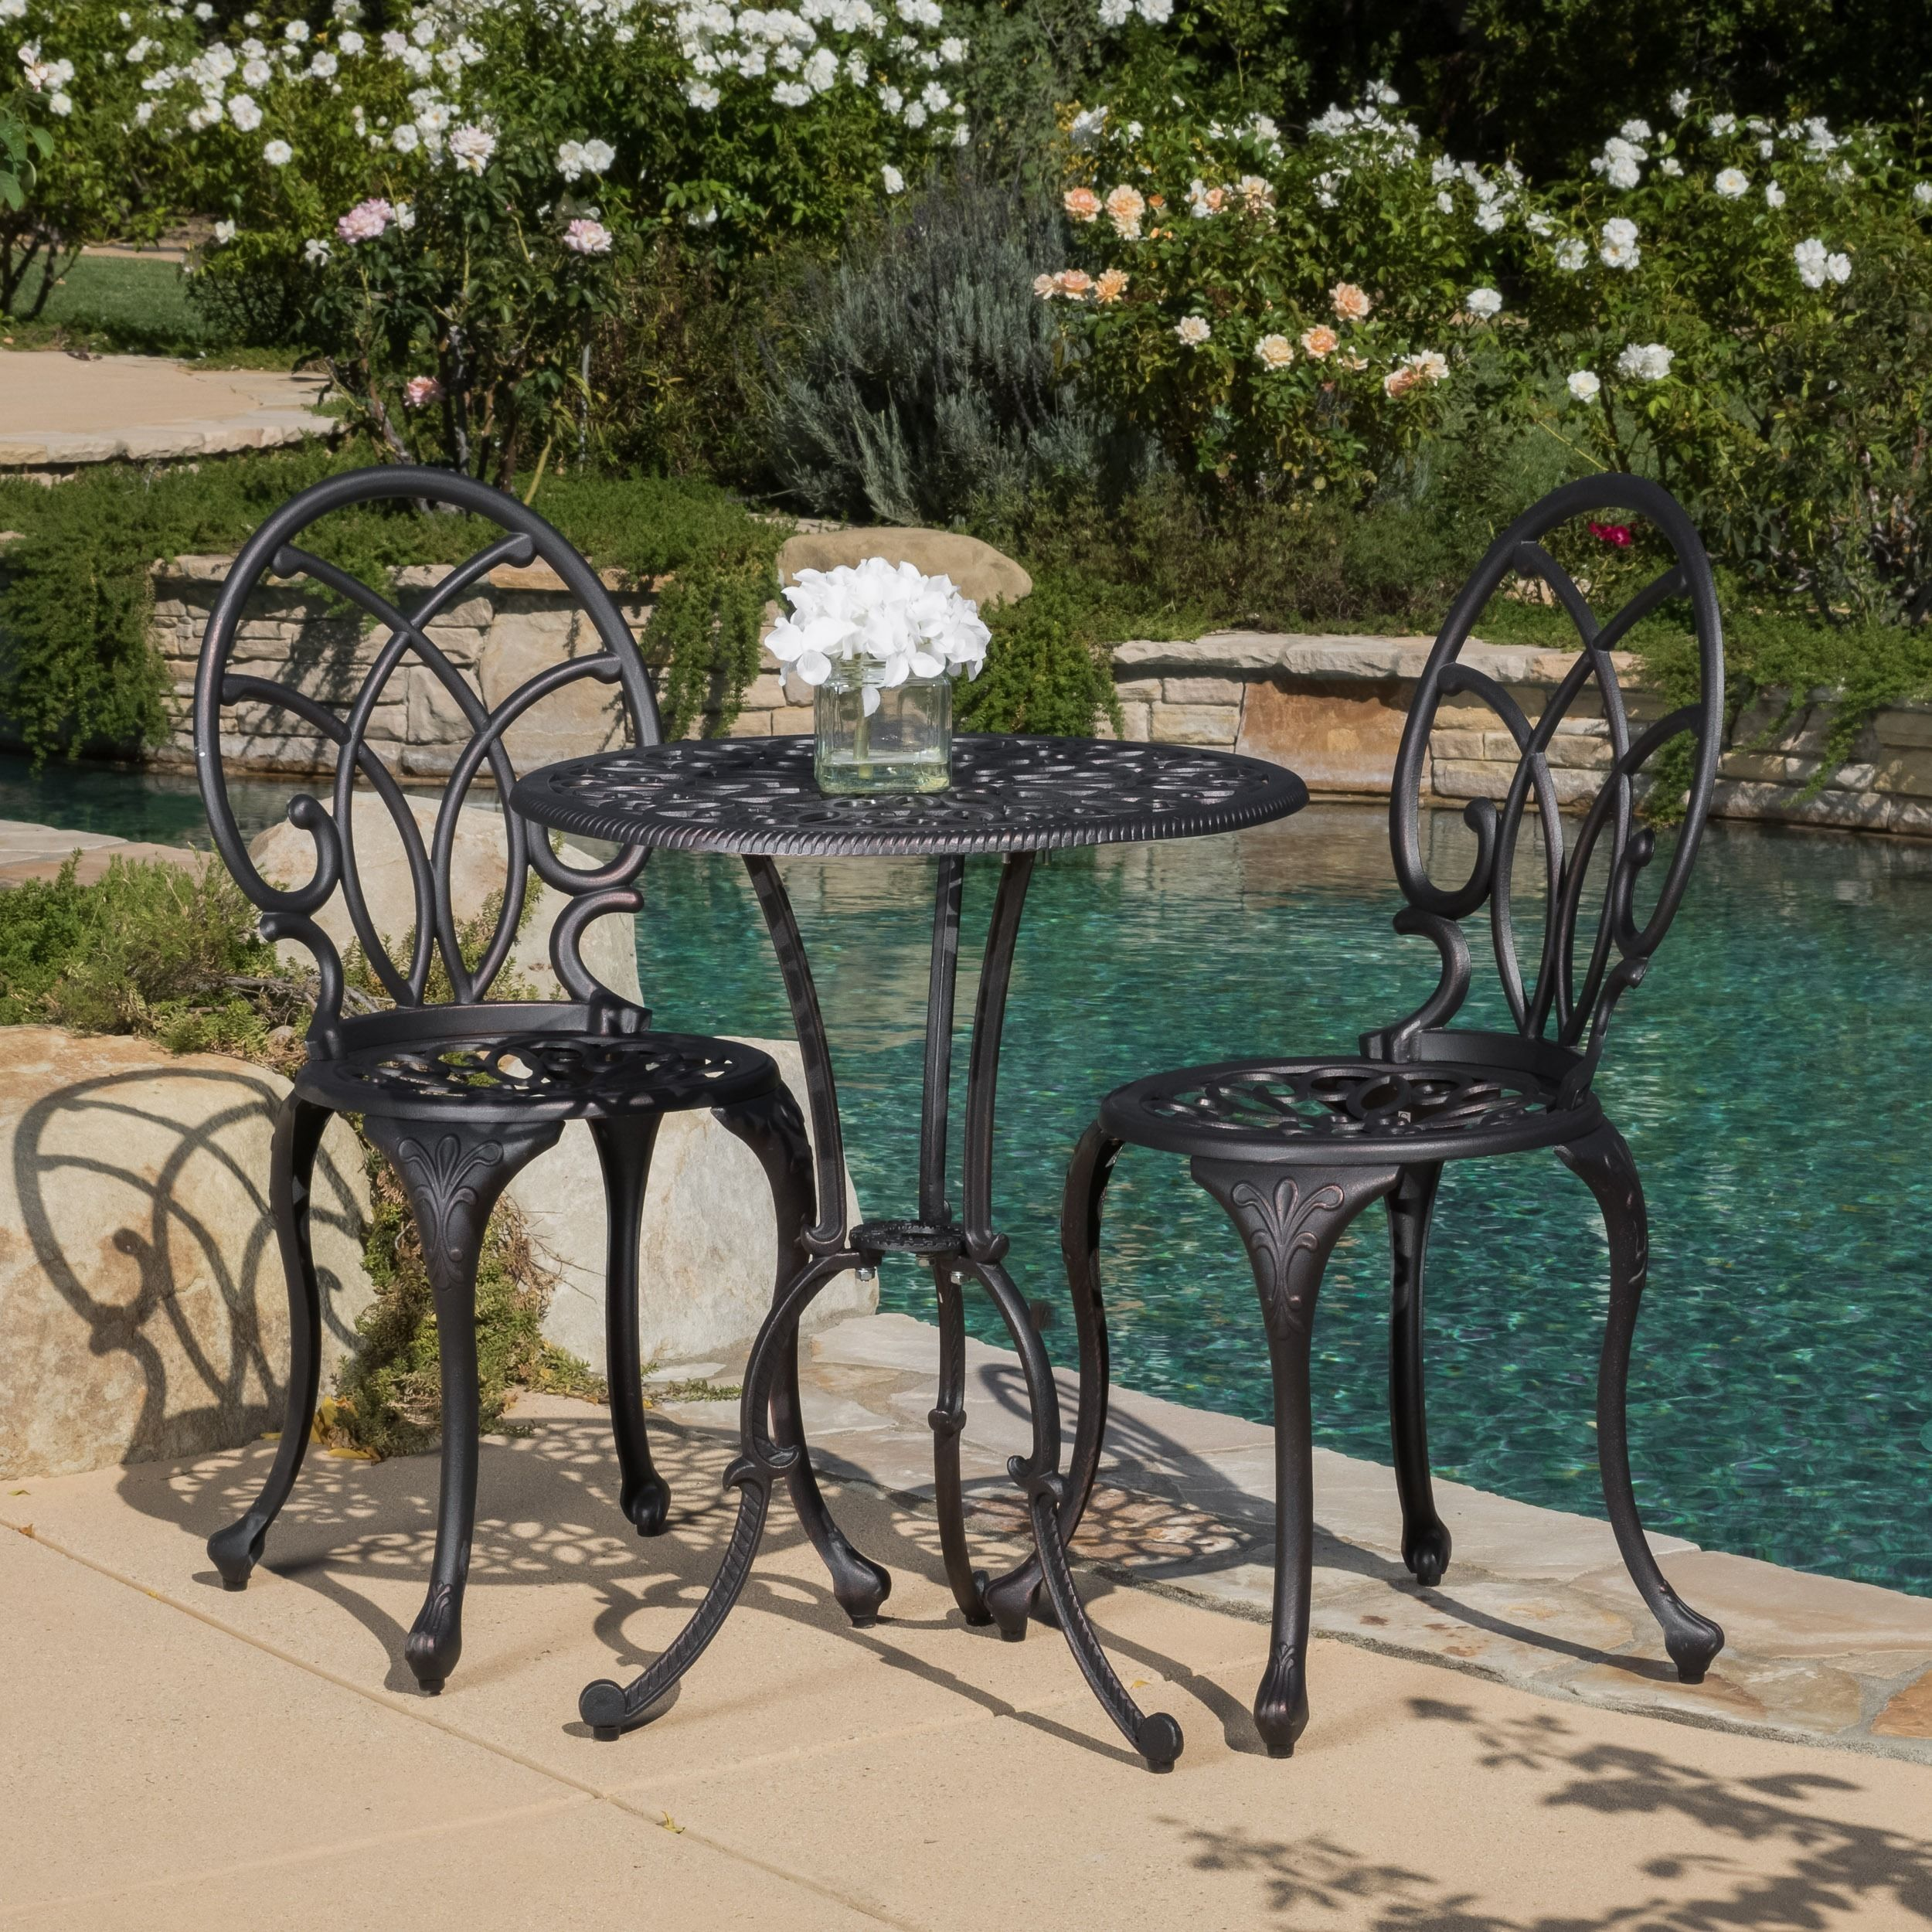 This Frenchstyle outdoor bistro set will lend classy